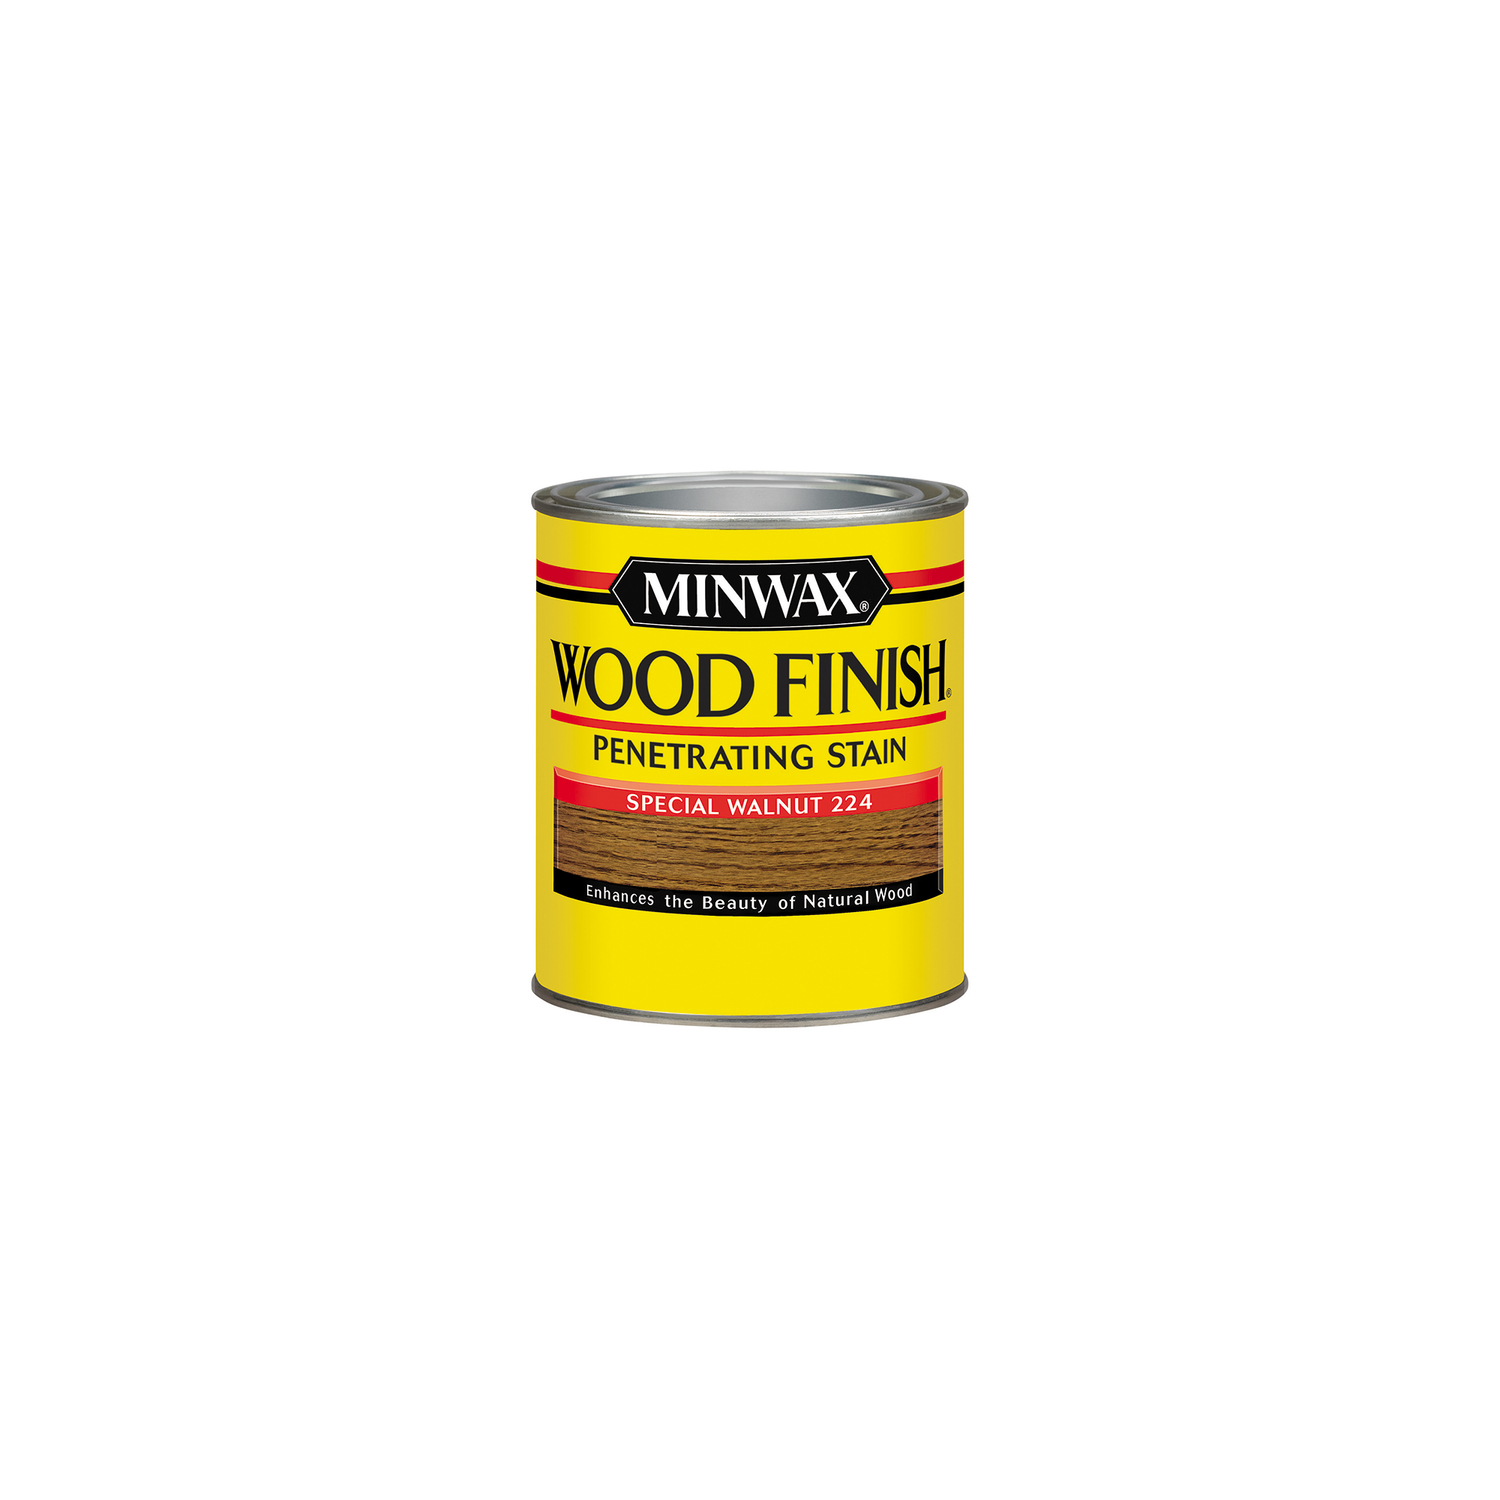 Minwax  Wood Finish  Semi-Transparent  Special Walnut  Oil-Based  Oil  Wood Stain  0.5 pt.